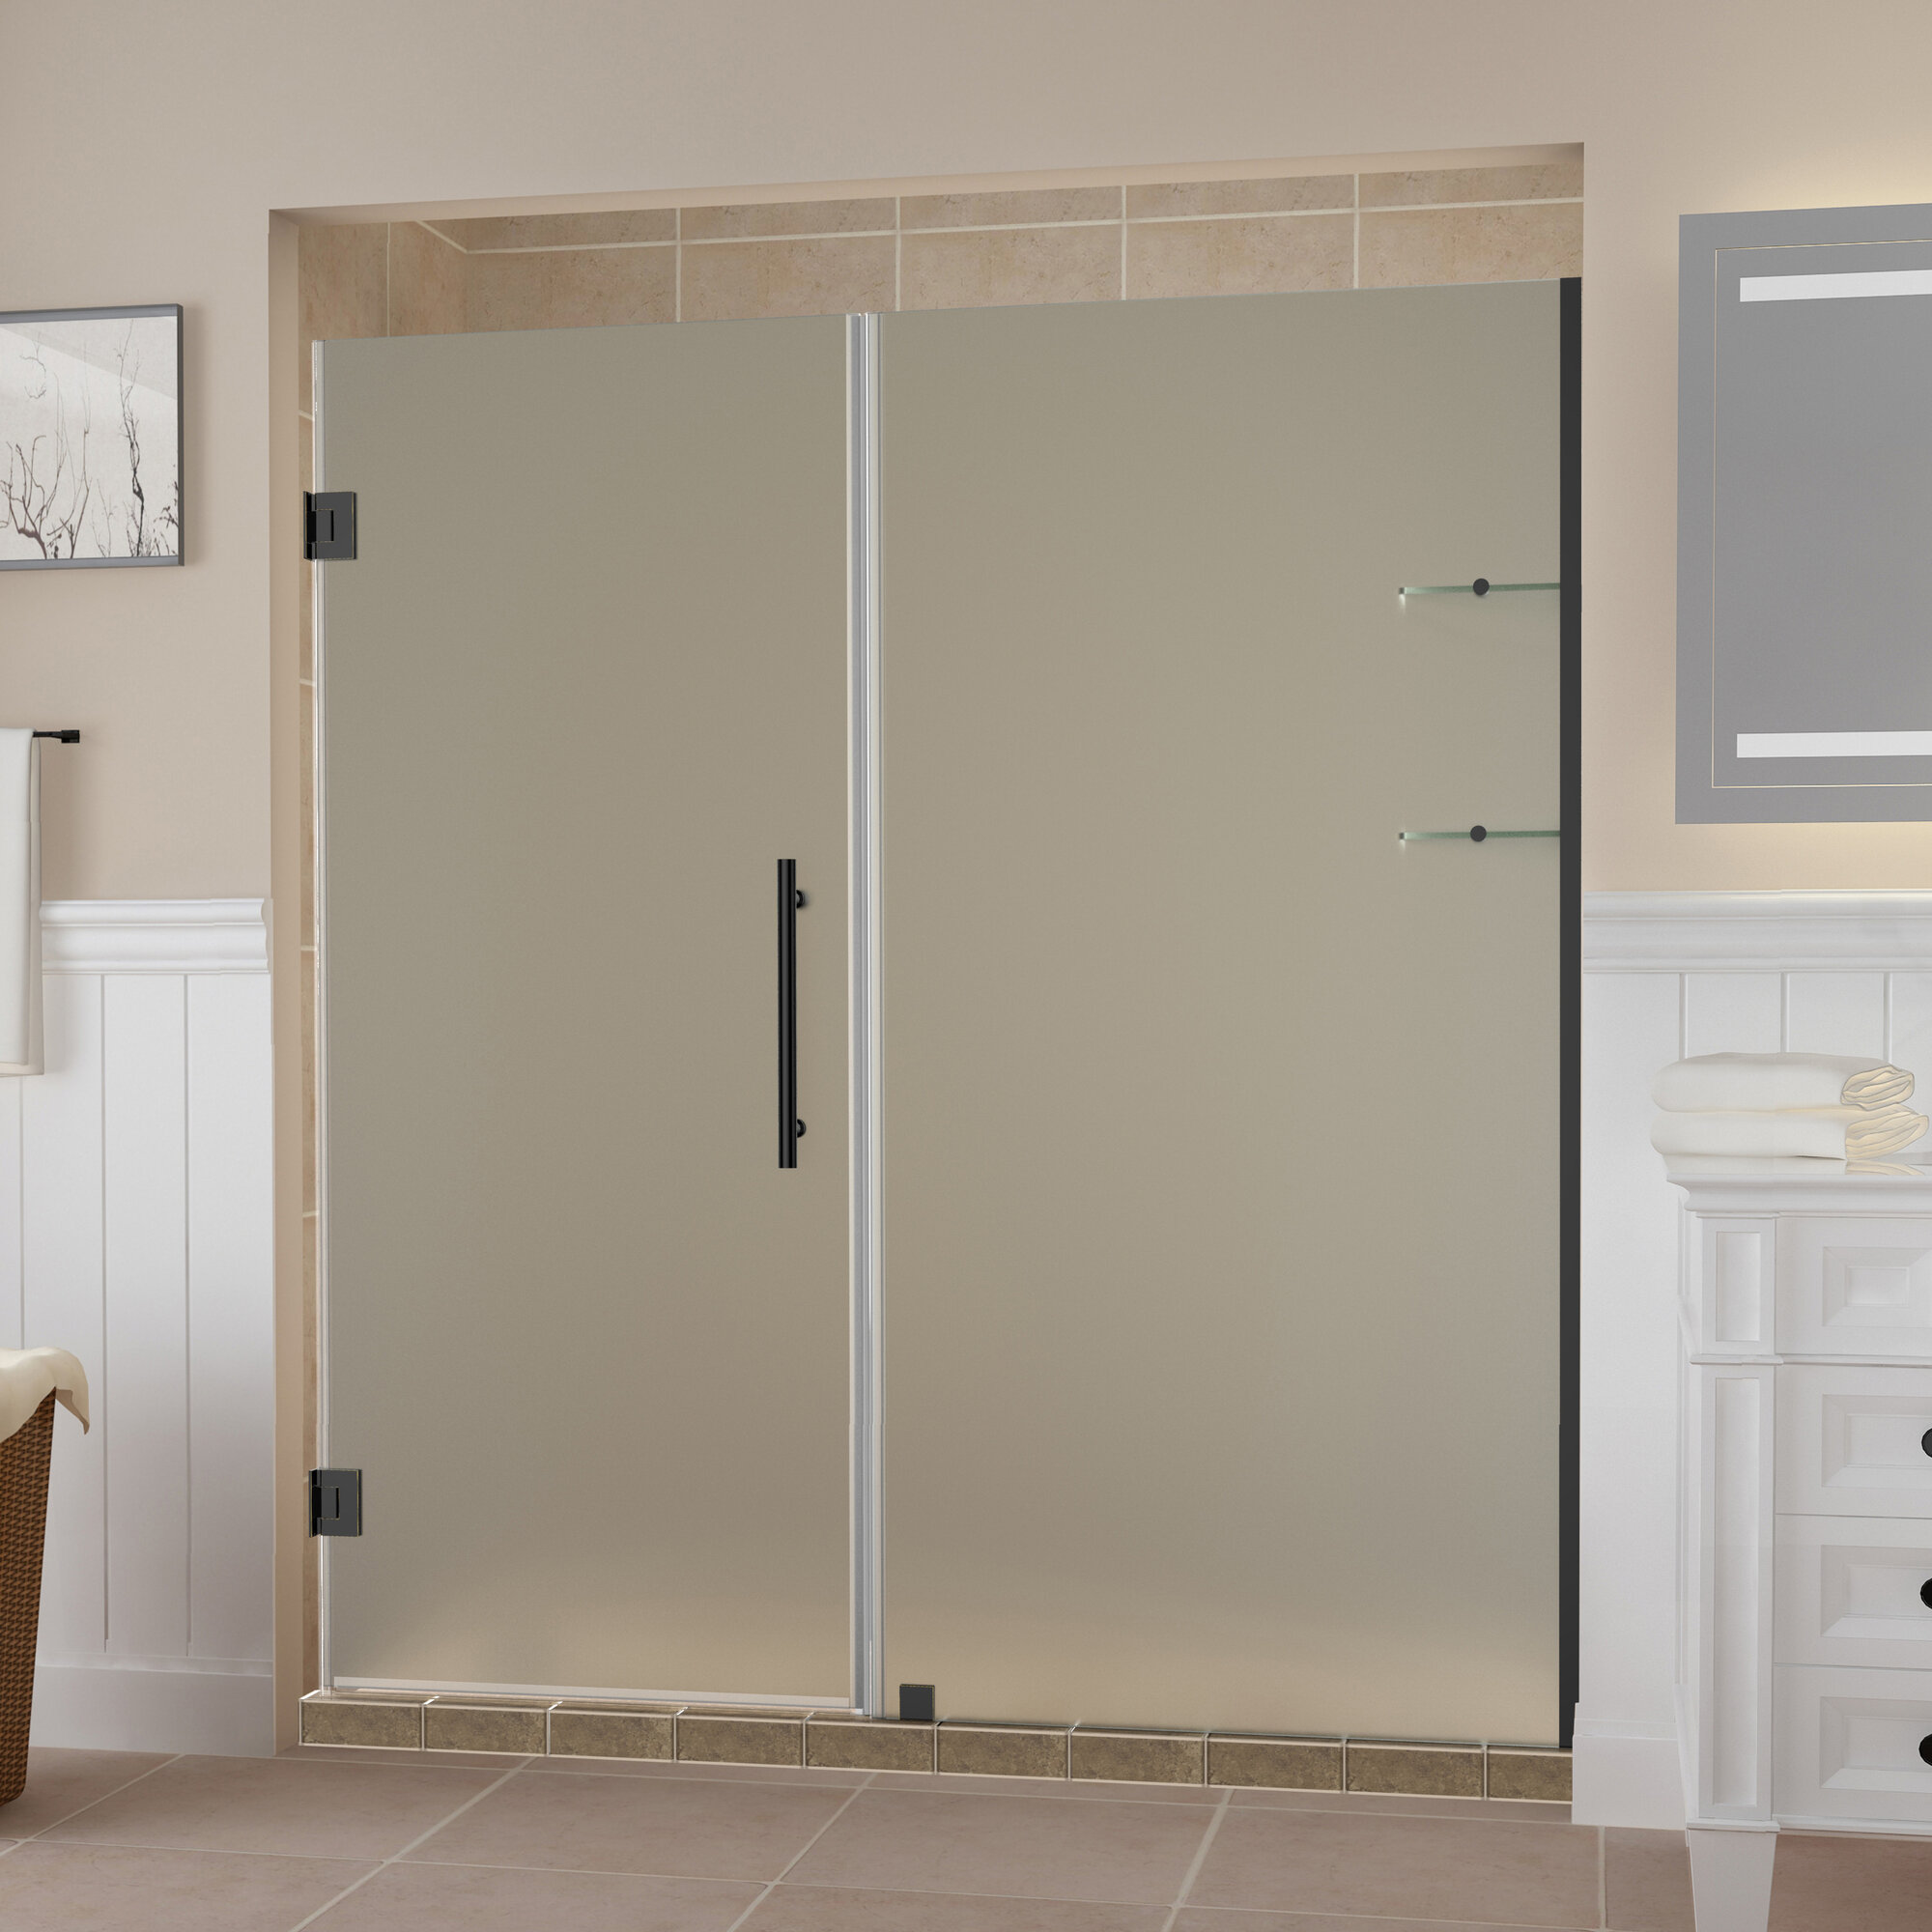 Details About Aston Belmore Gs 48 X 72 Hinged Frameless Shower Door Oil Rubbed Bronze Clear